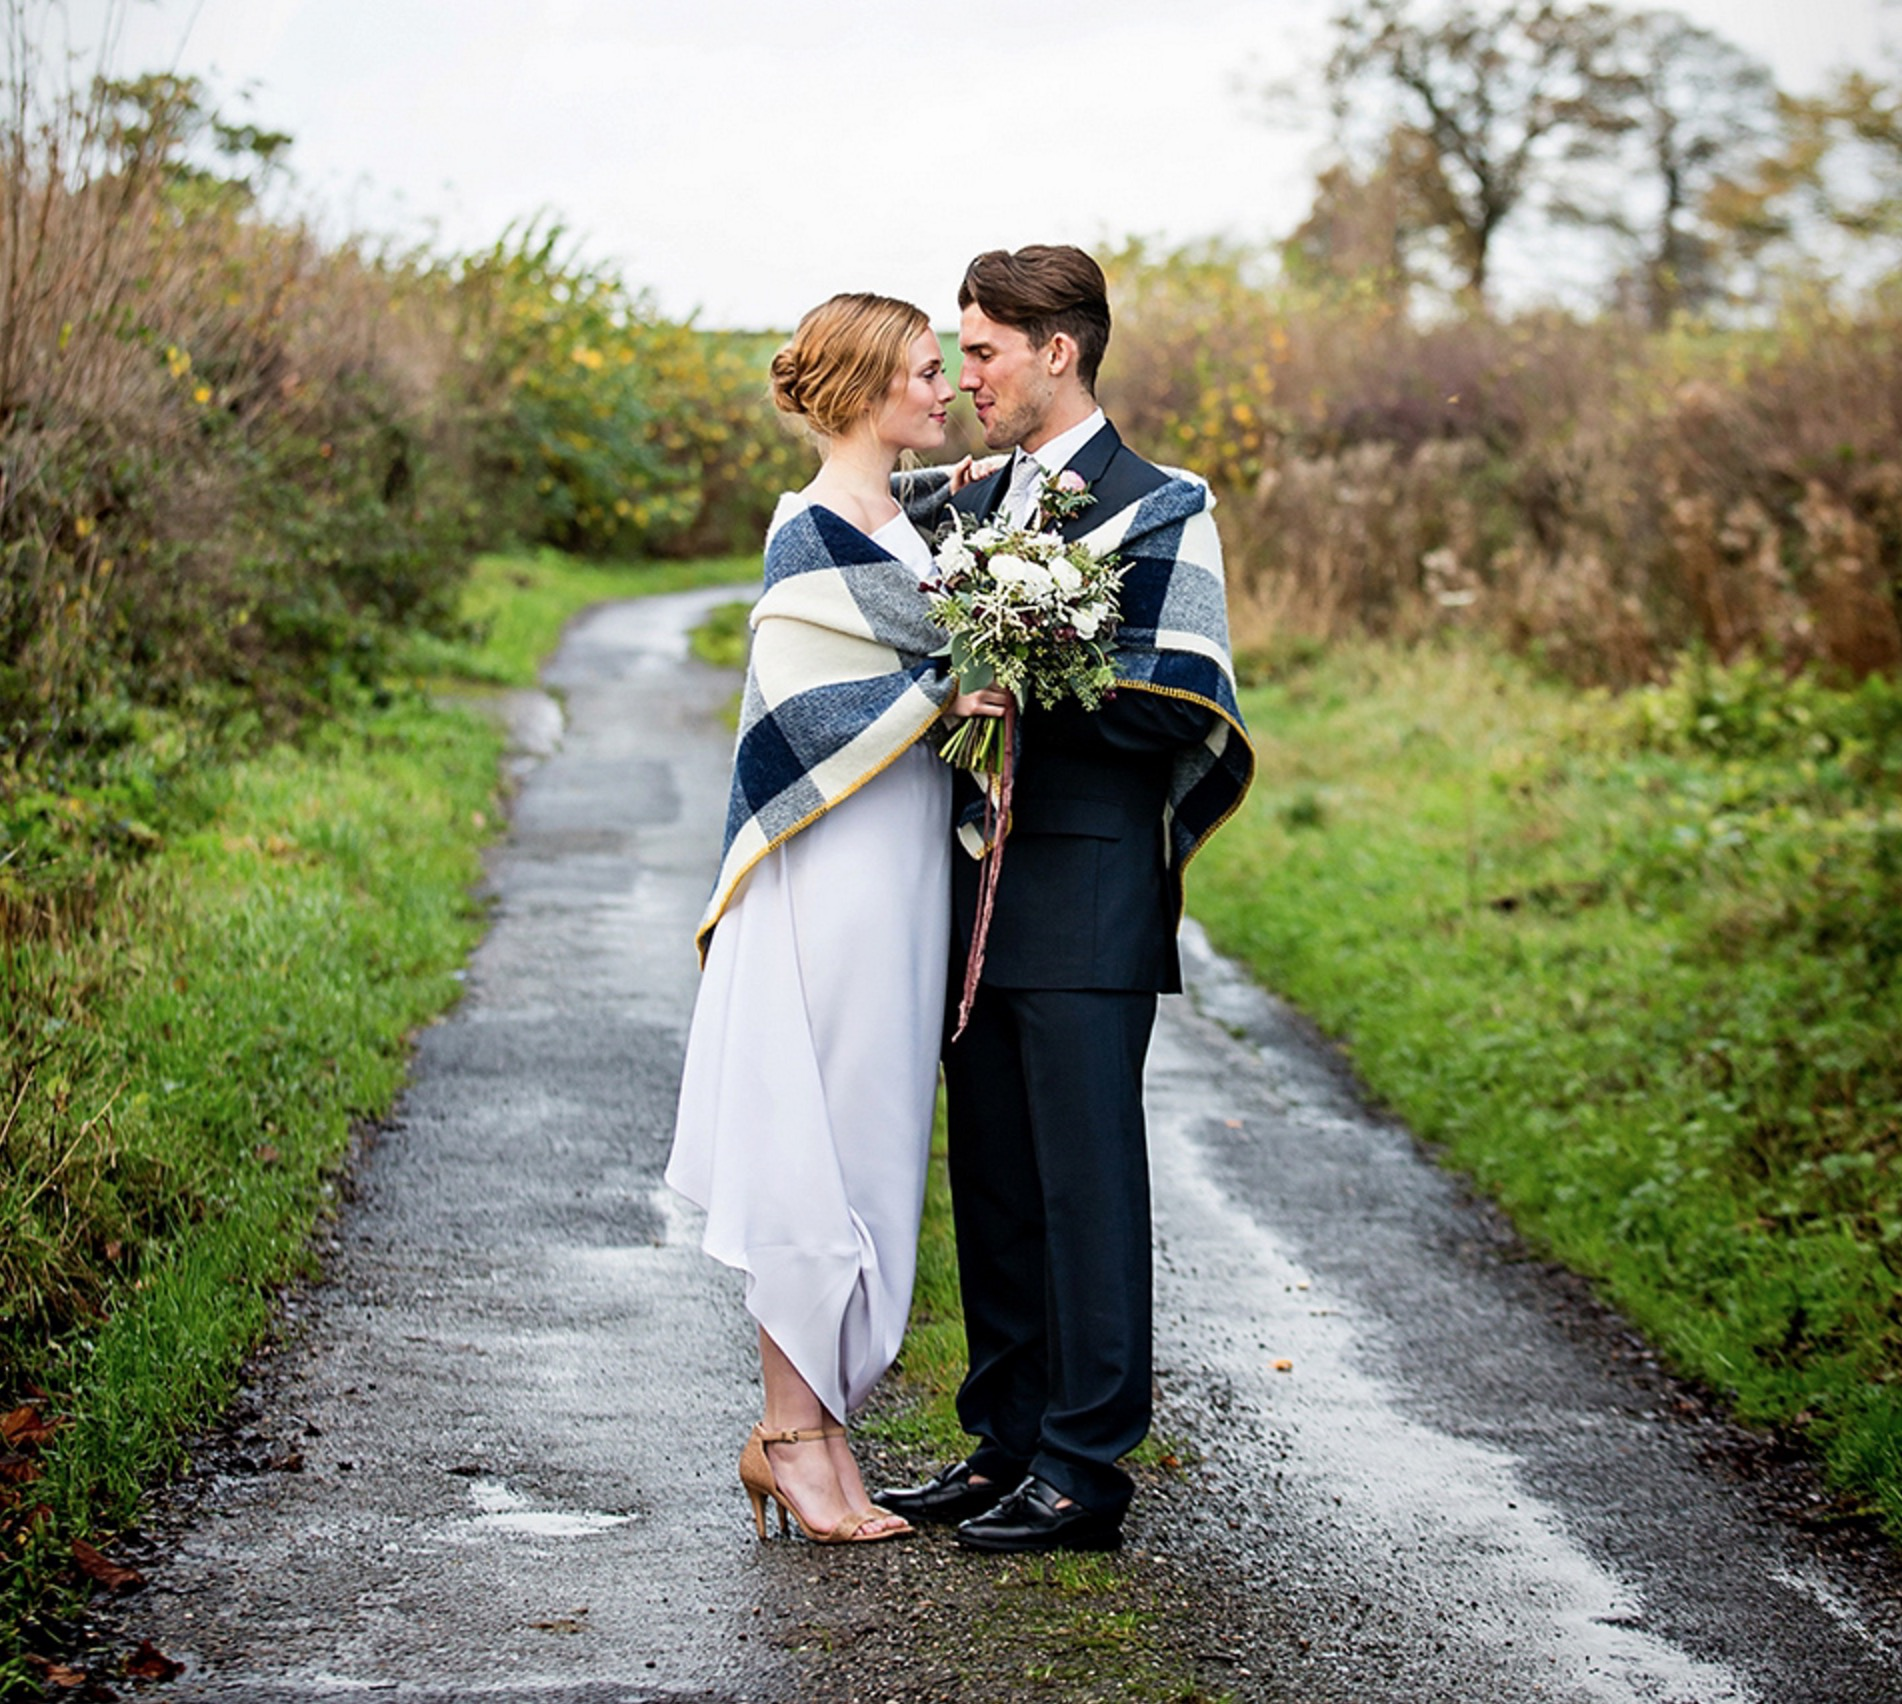 Elegant and Modern Winter Wedding in the Country Inspiration